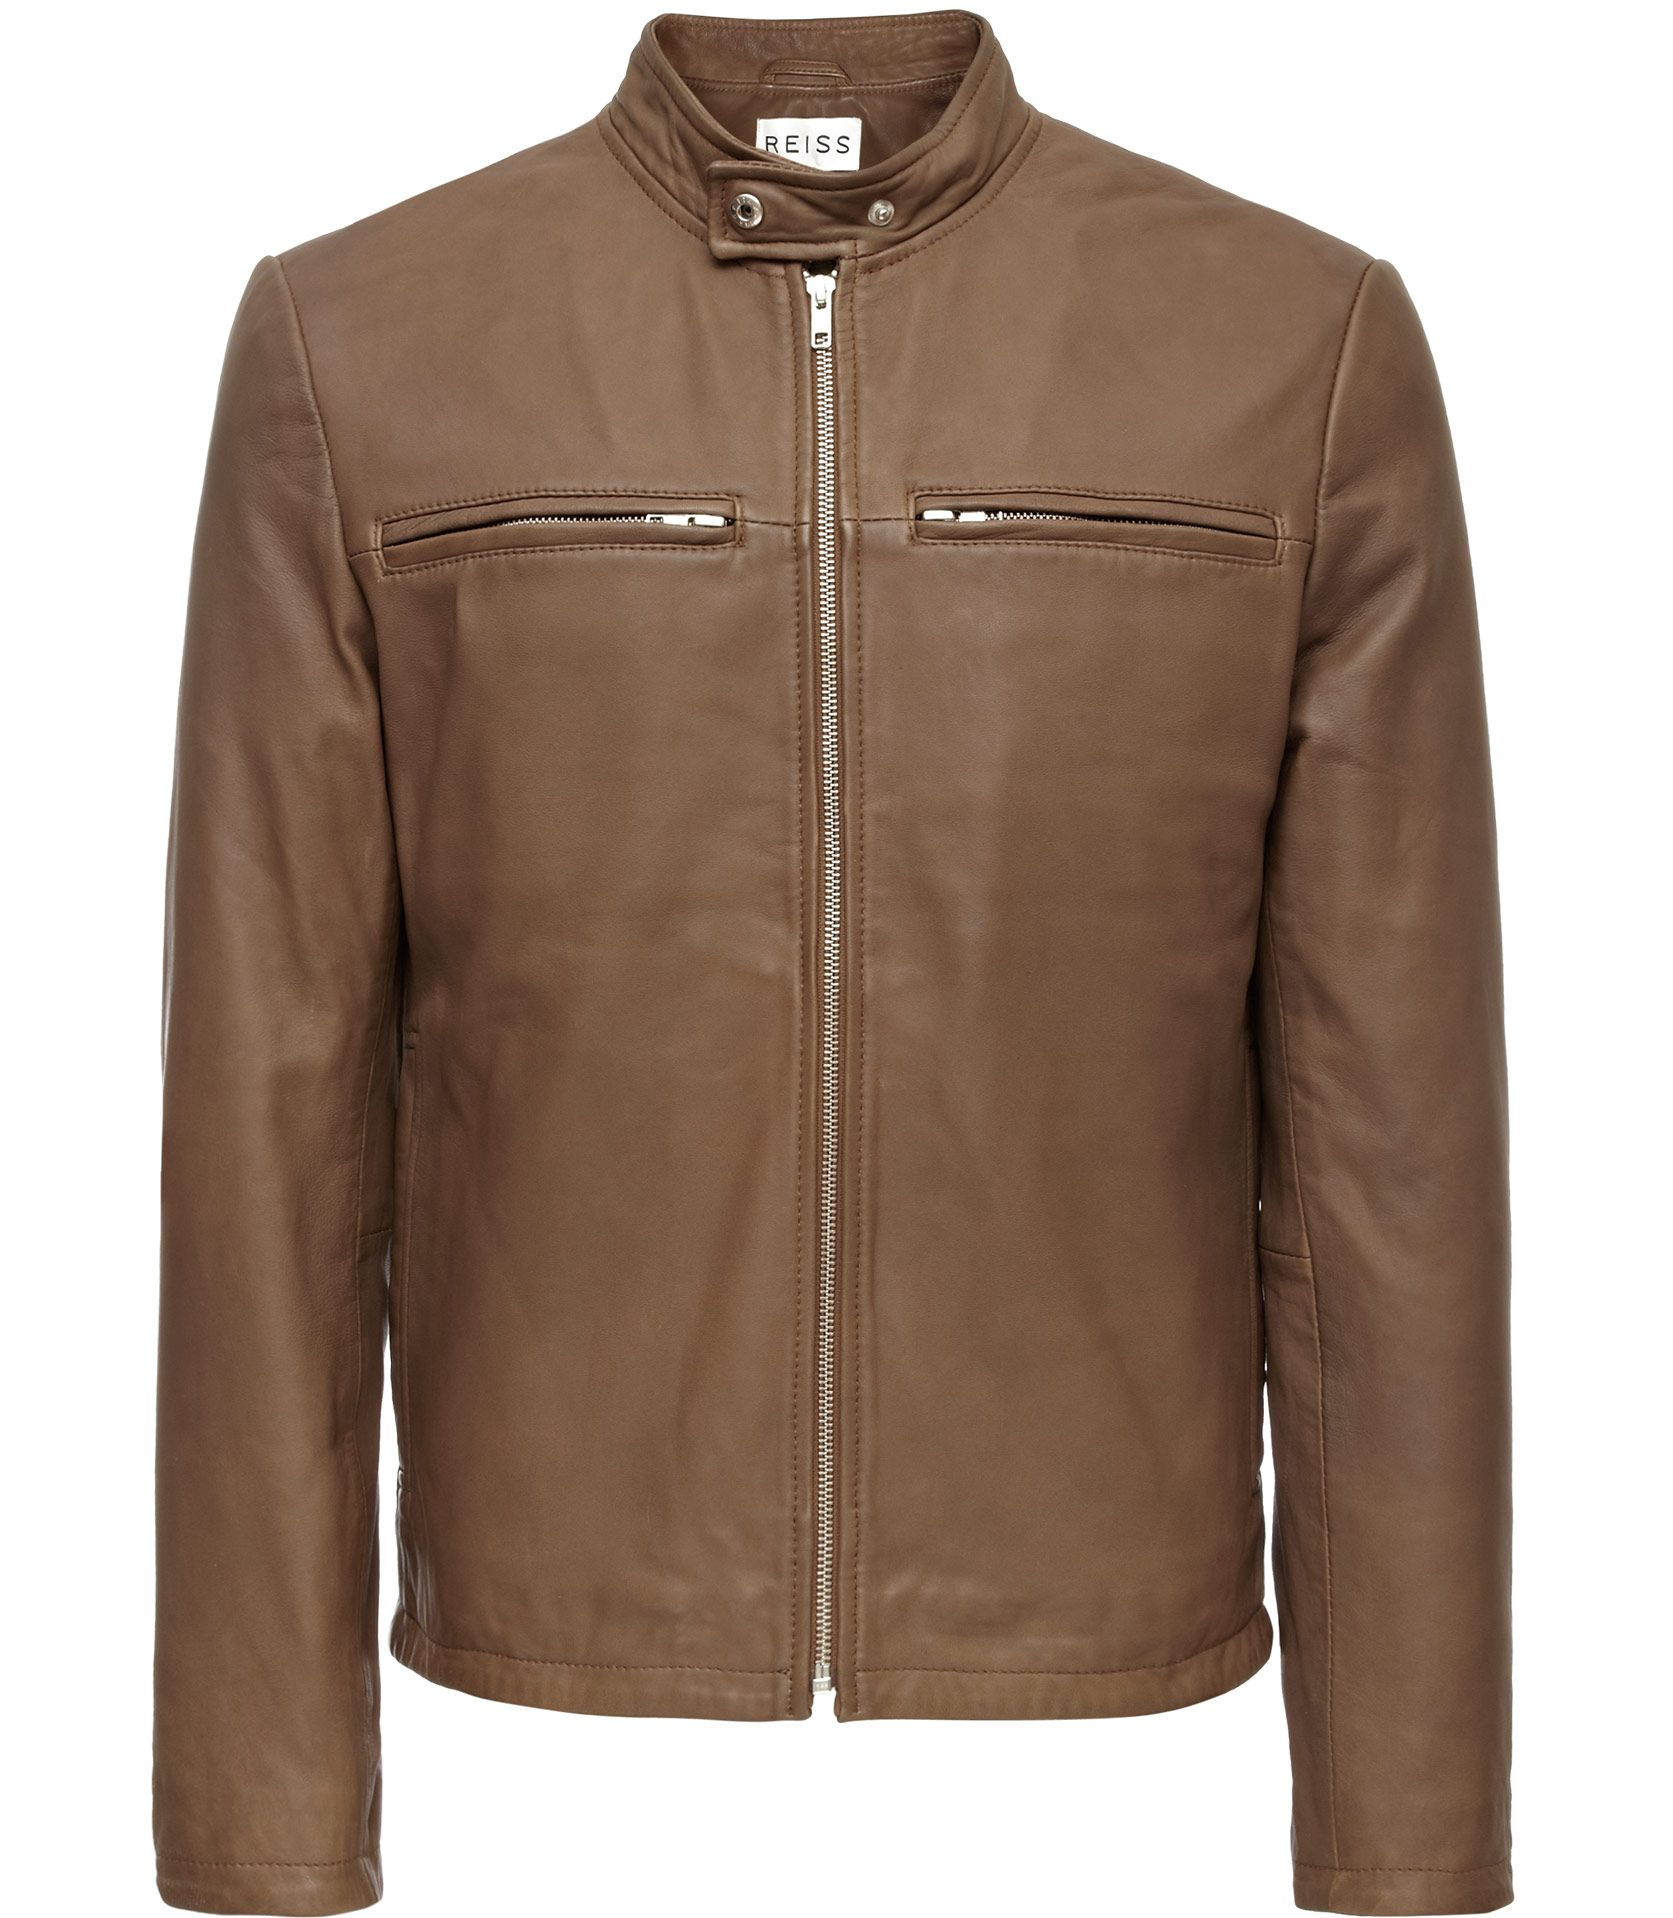 Reiss Colorado Washed Leather Biker Jacket 710 Mens Clothing Styles Mens Fashion Wear Jackets [ 1918 x 1673 Pixel ]